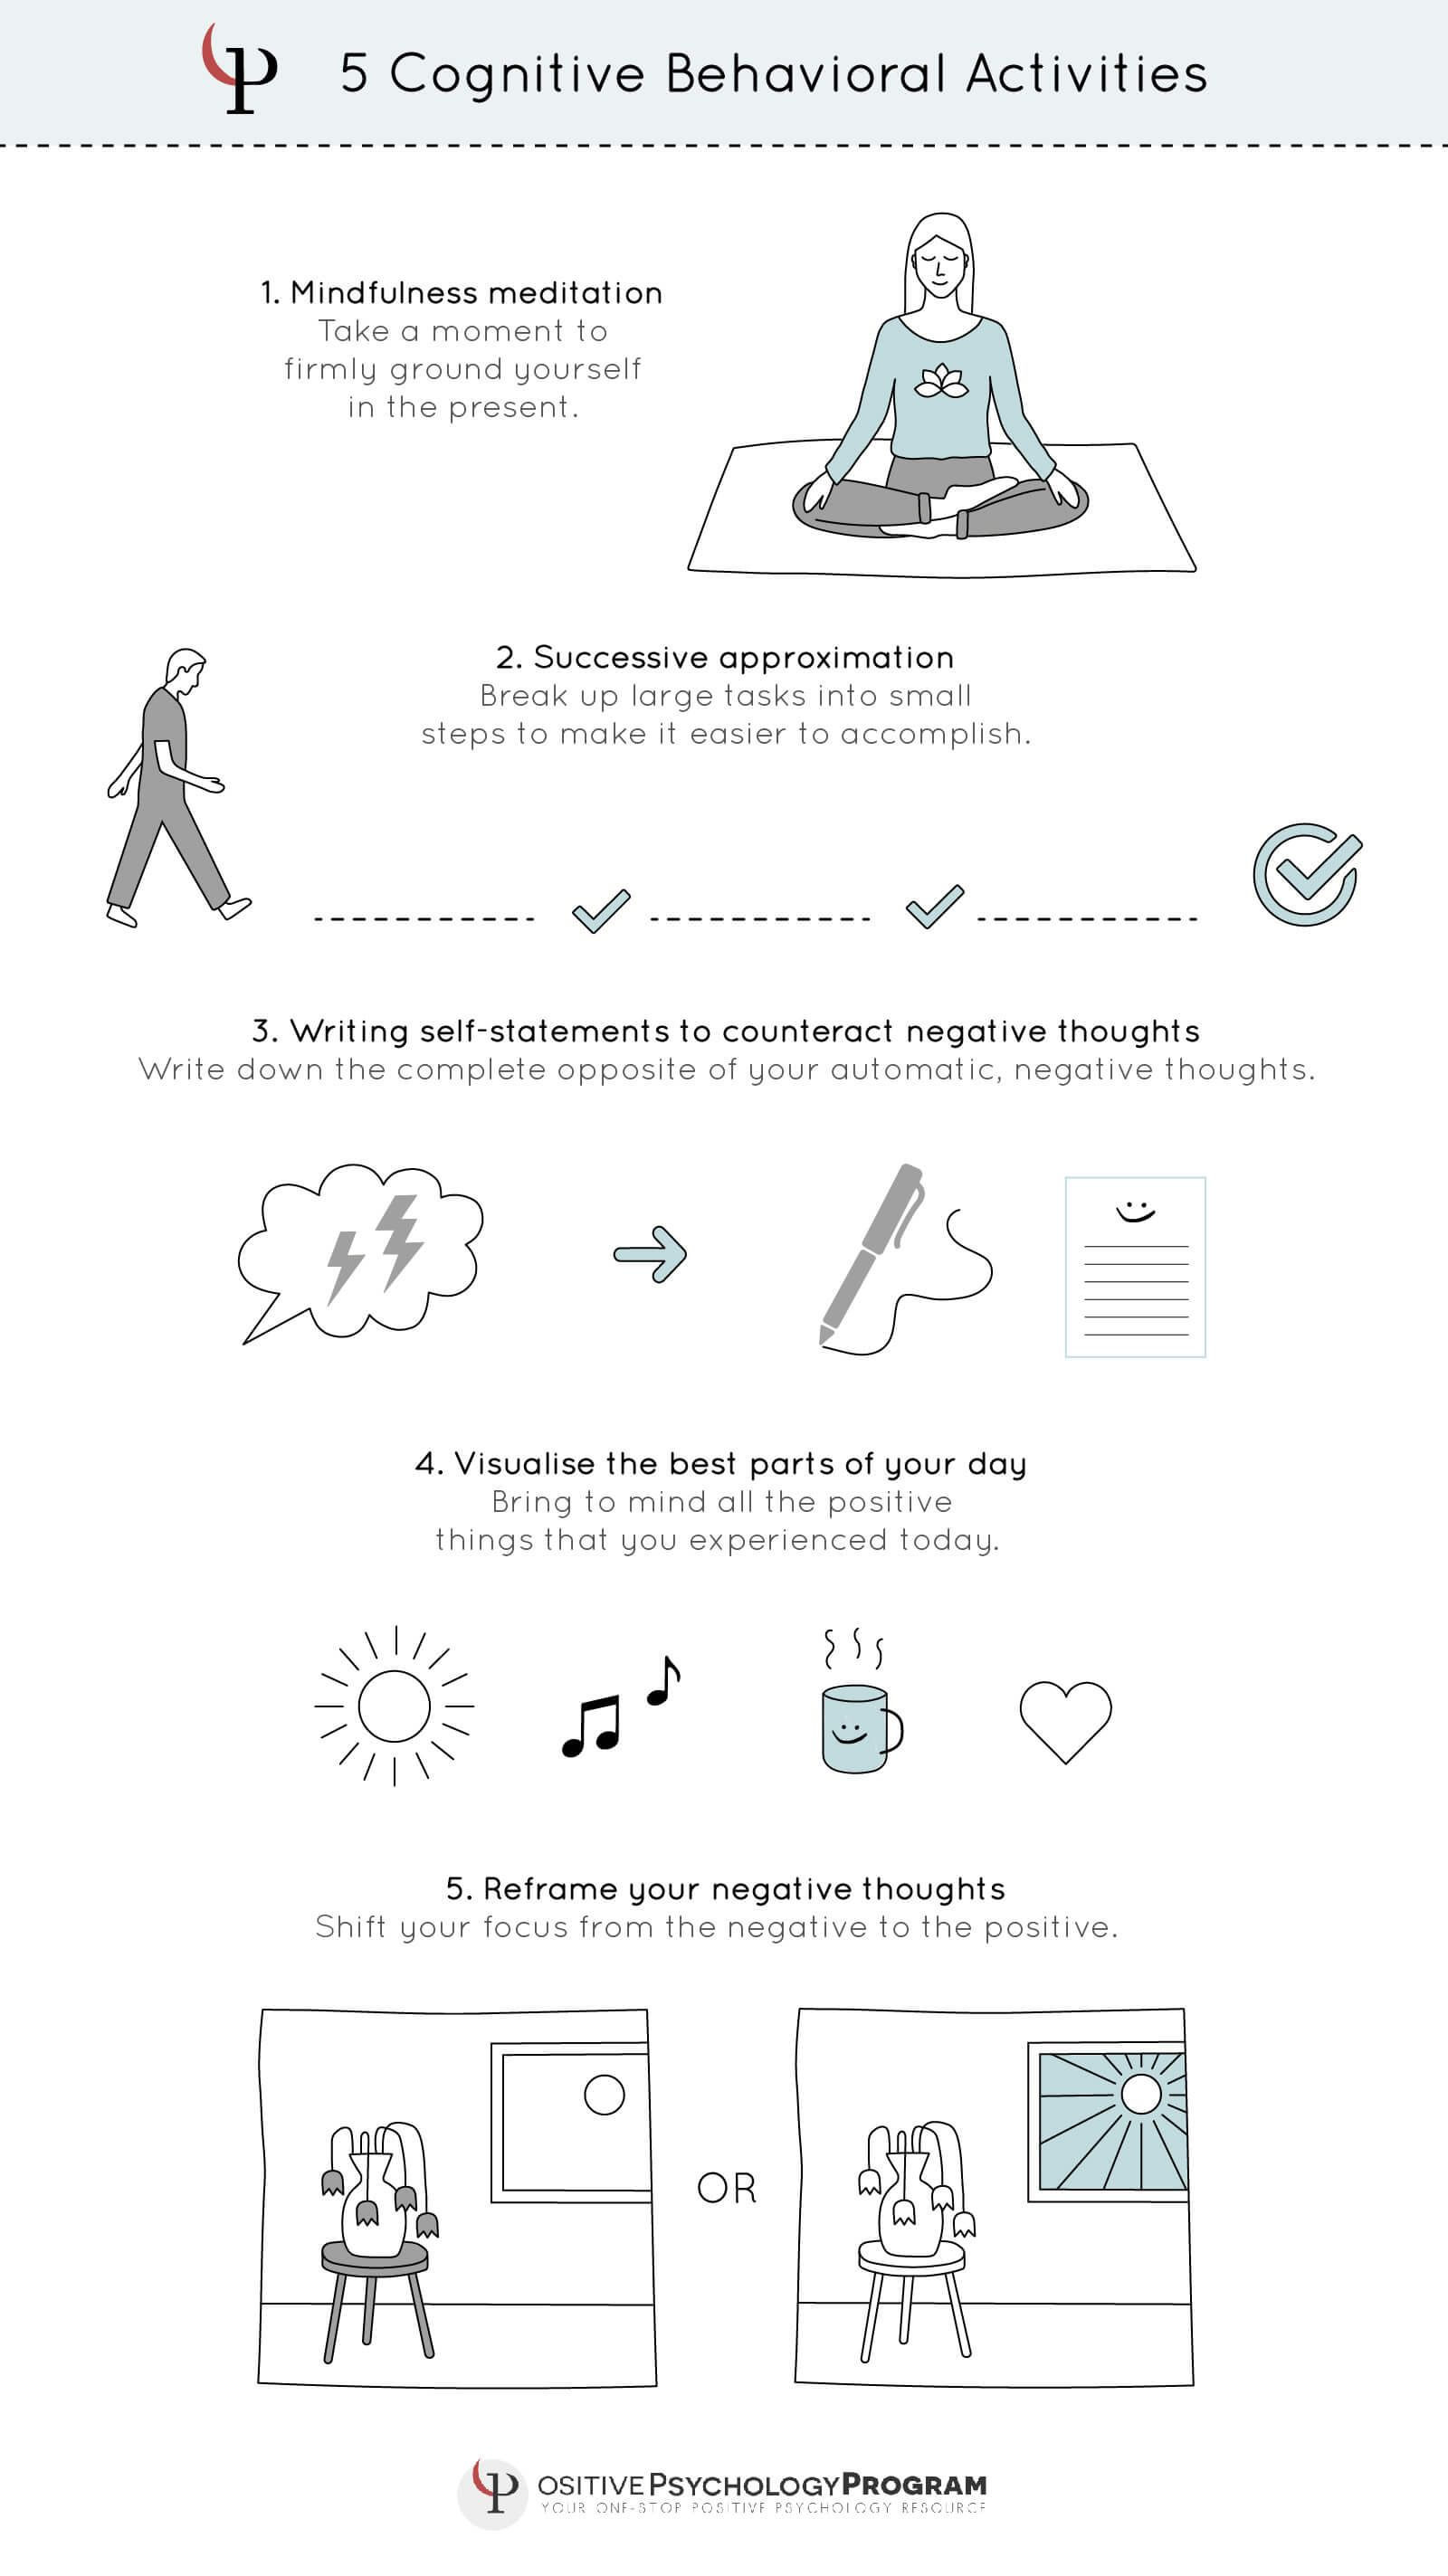 5 Cognitive Behavioral Activities With Images